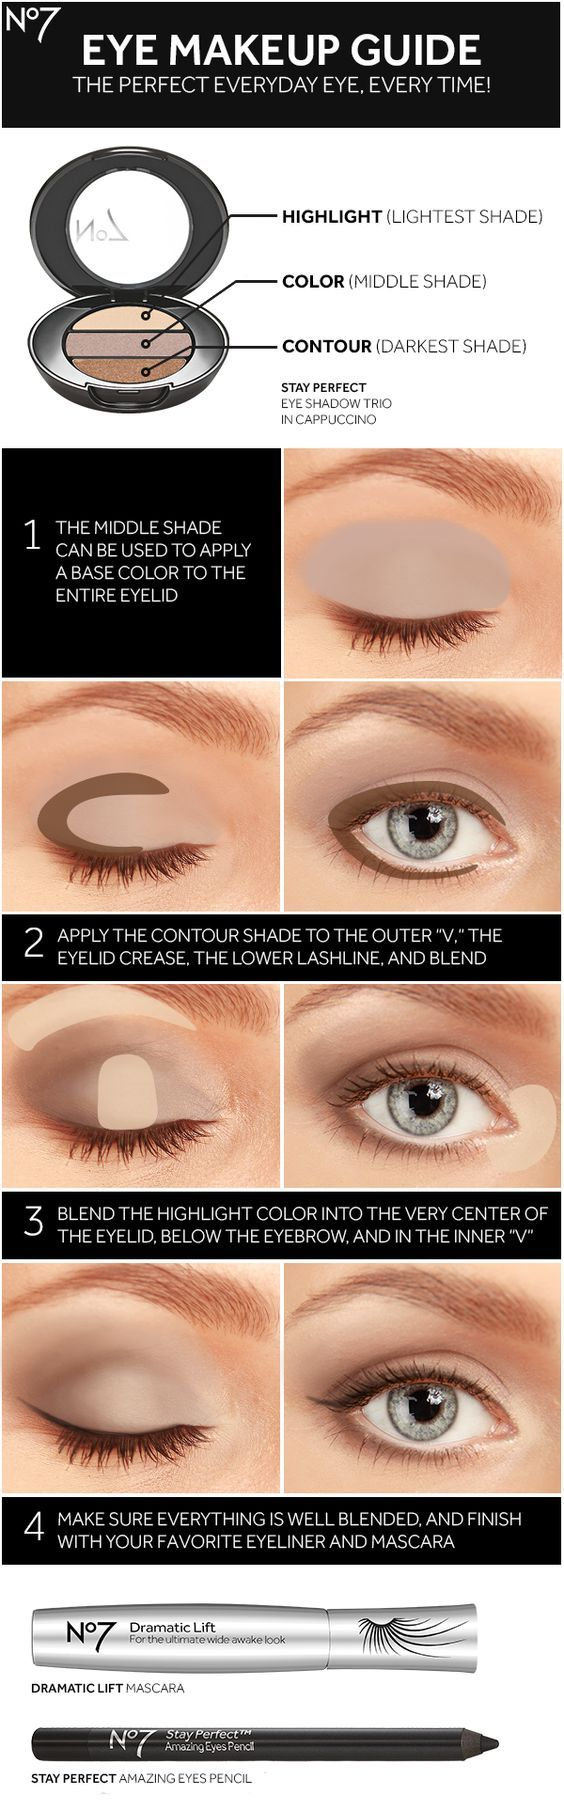 One of the biggest problem area for girls is their eyes. How to shape, contour, length of eye lashes and more. This guide will help you highlight, color and contour your eyes to give you the professional look.  10 Common Makeup Mistakes and How to Fix Them | https://thepageantplanet.com/10-common-makeup-mistakes-and-how-to-fix-them/